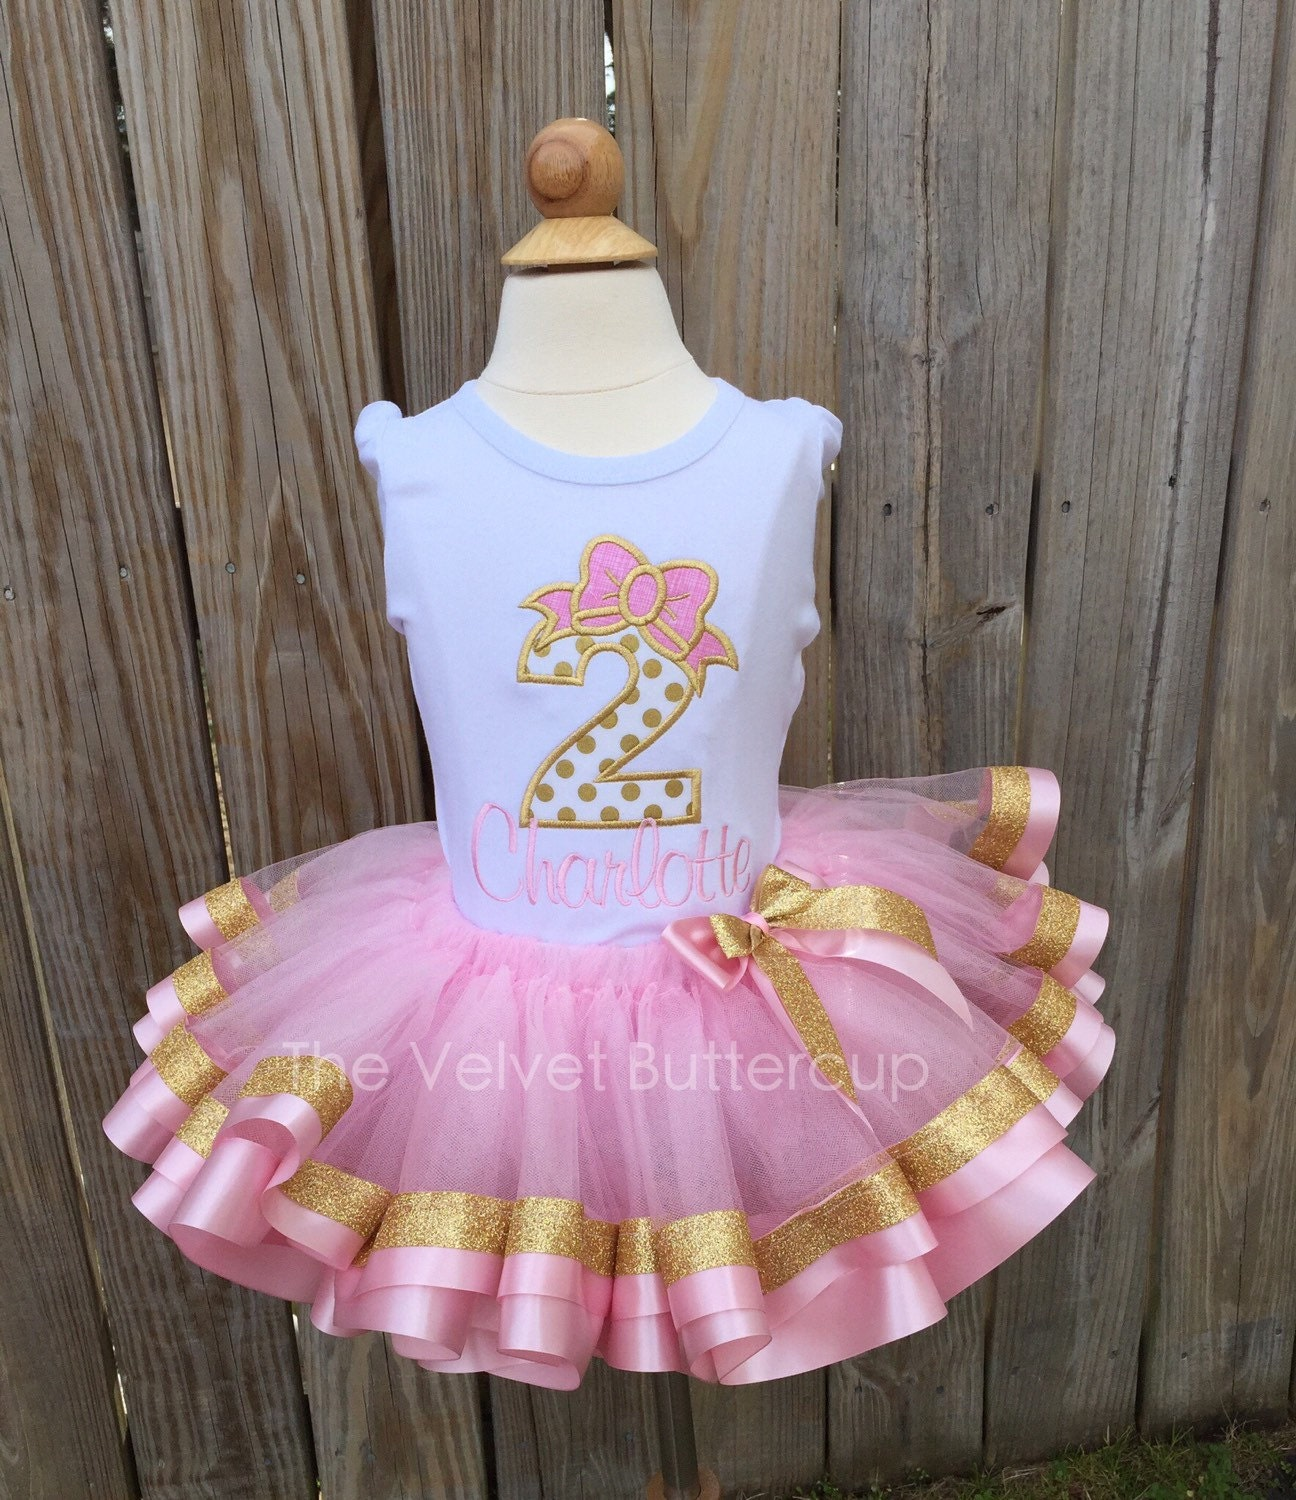 Birthday Party Outfit: Second Birthday Outfit Second Birthday Set By